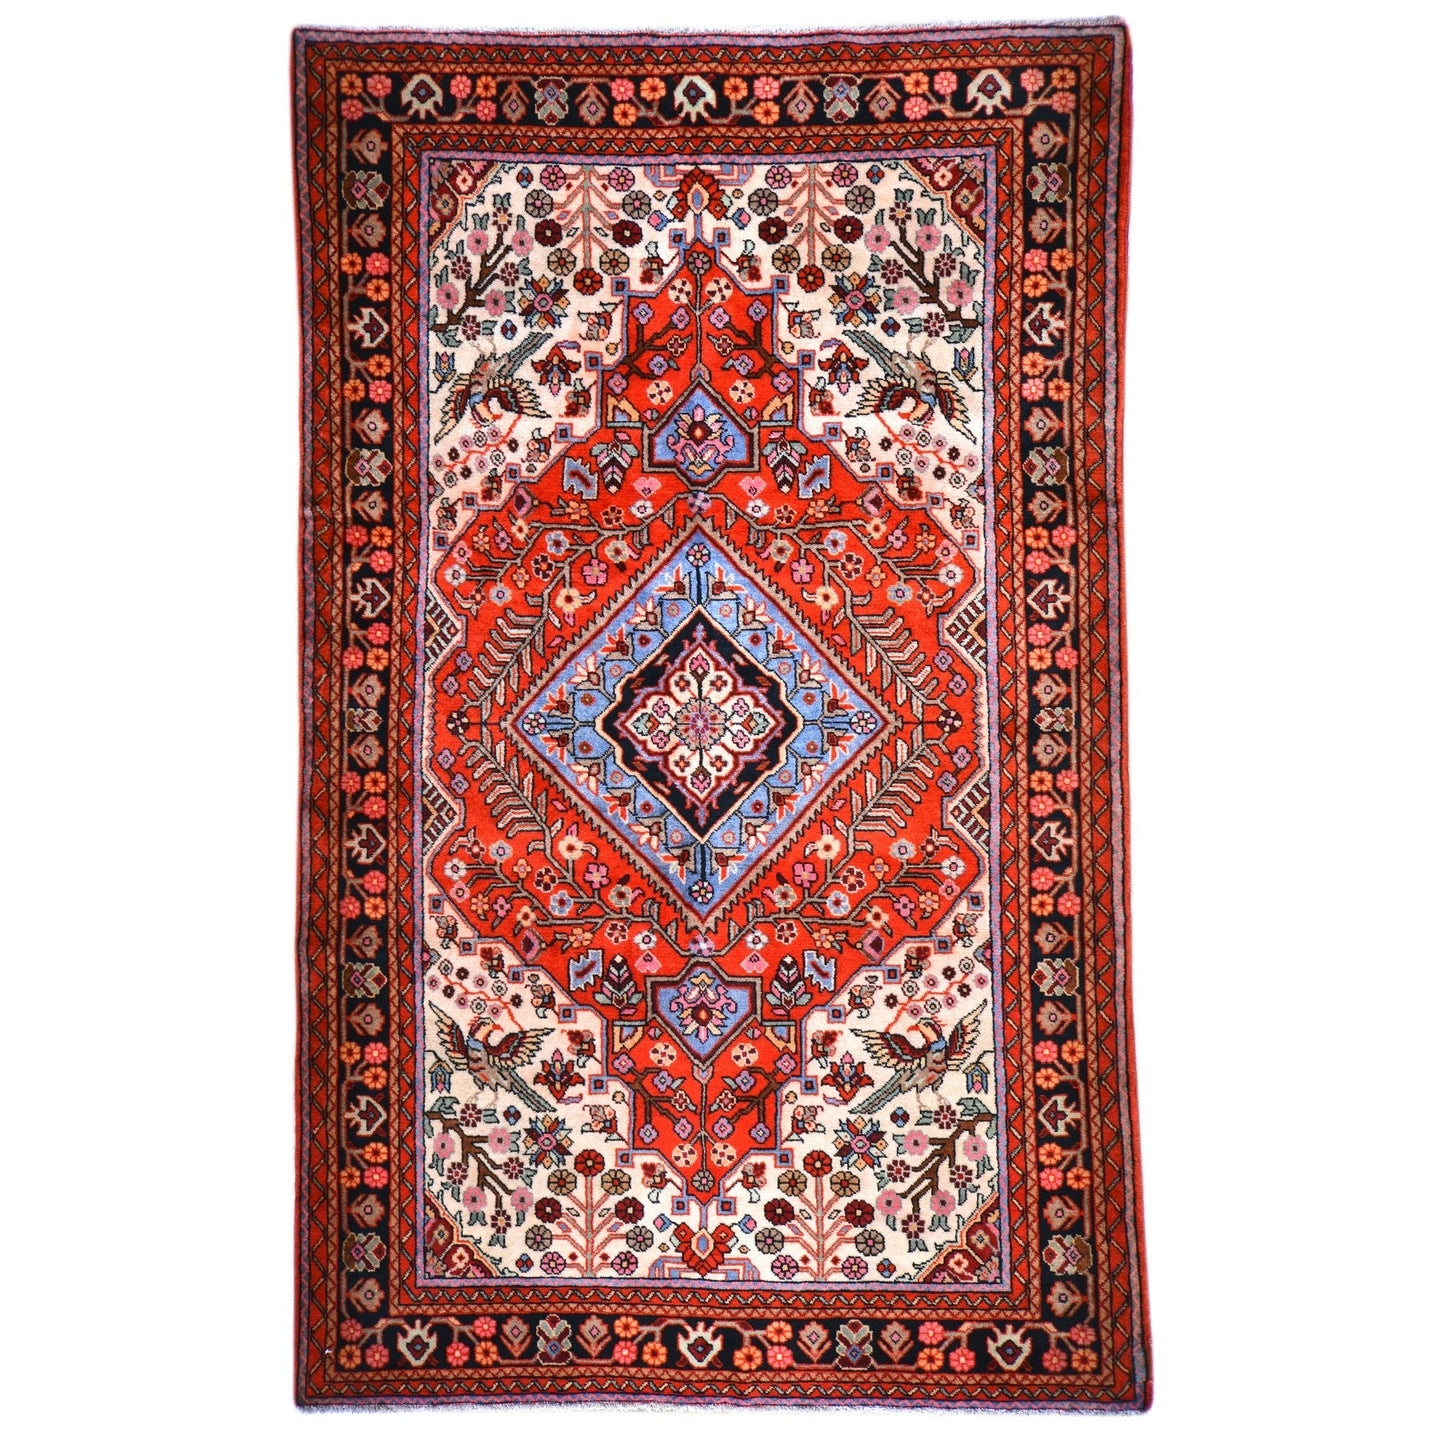 Oriental rugs, hand-knotted carpets, sustainable rugs, classic world oriental rugs, handmade, United States, interior design,  Brral-6534